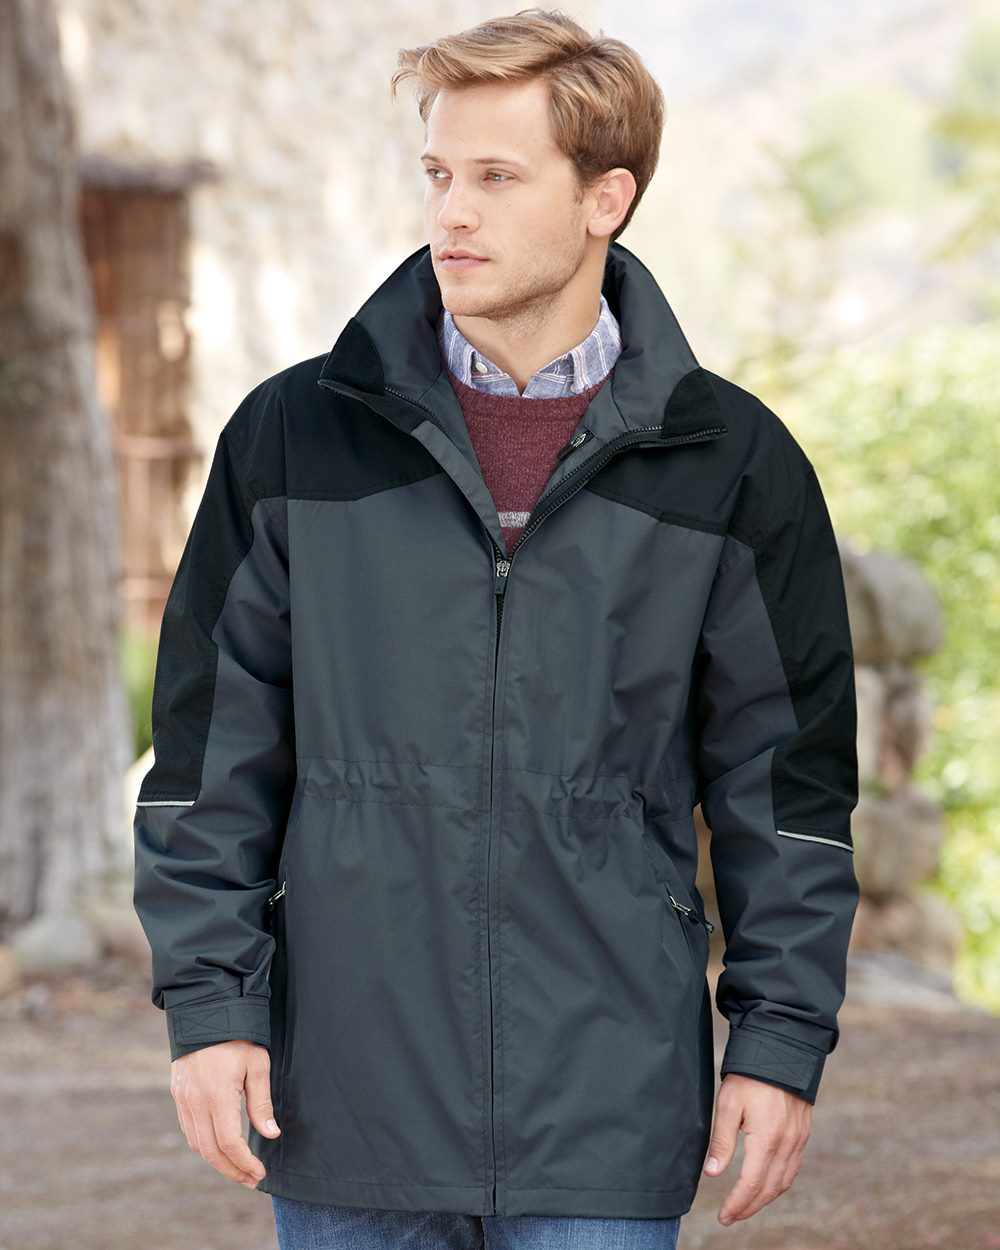 Colorado Clothing 7787 - Hard Shell Three in One Systems Parka